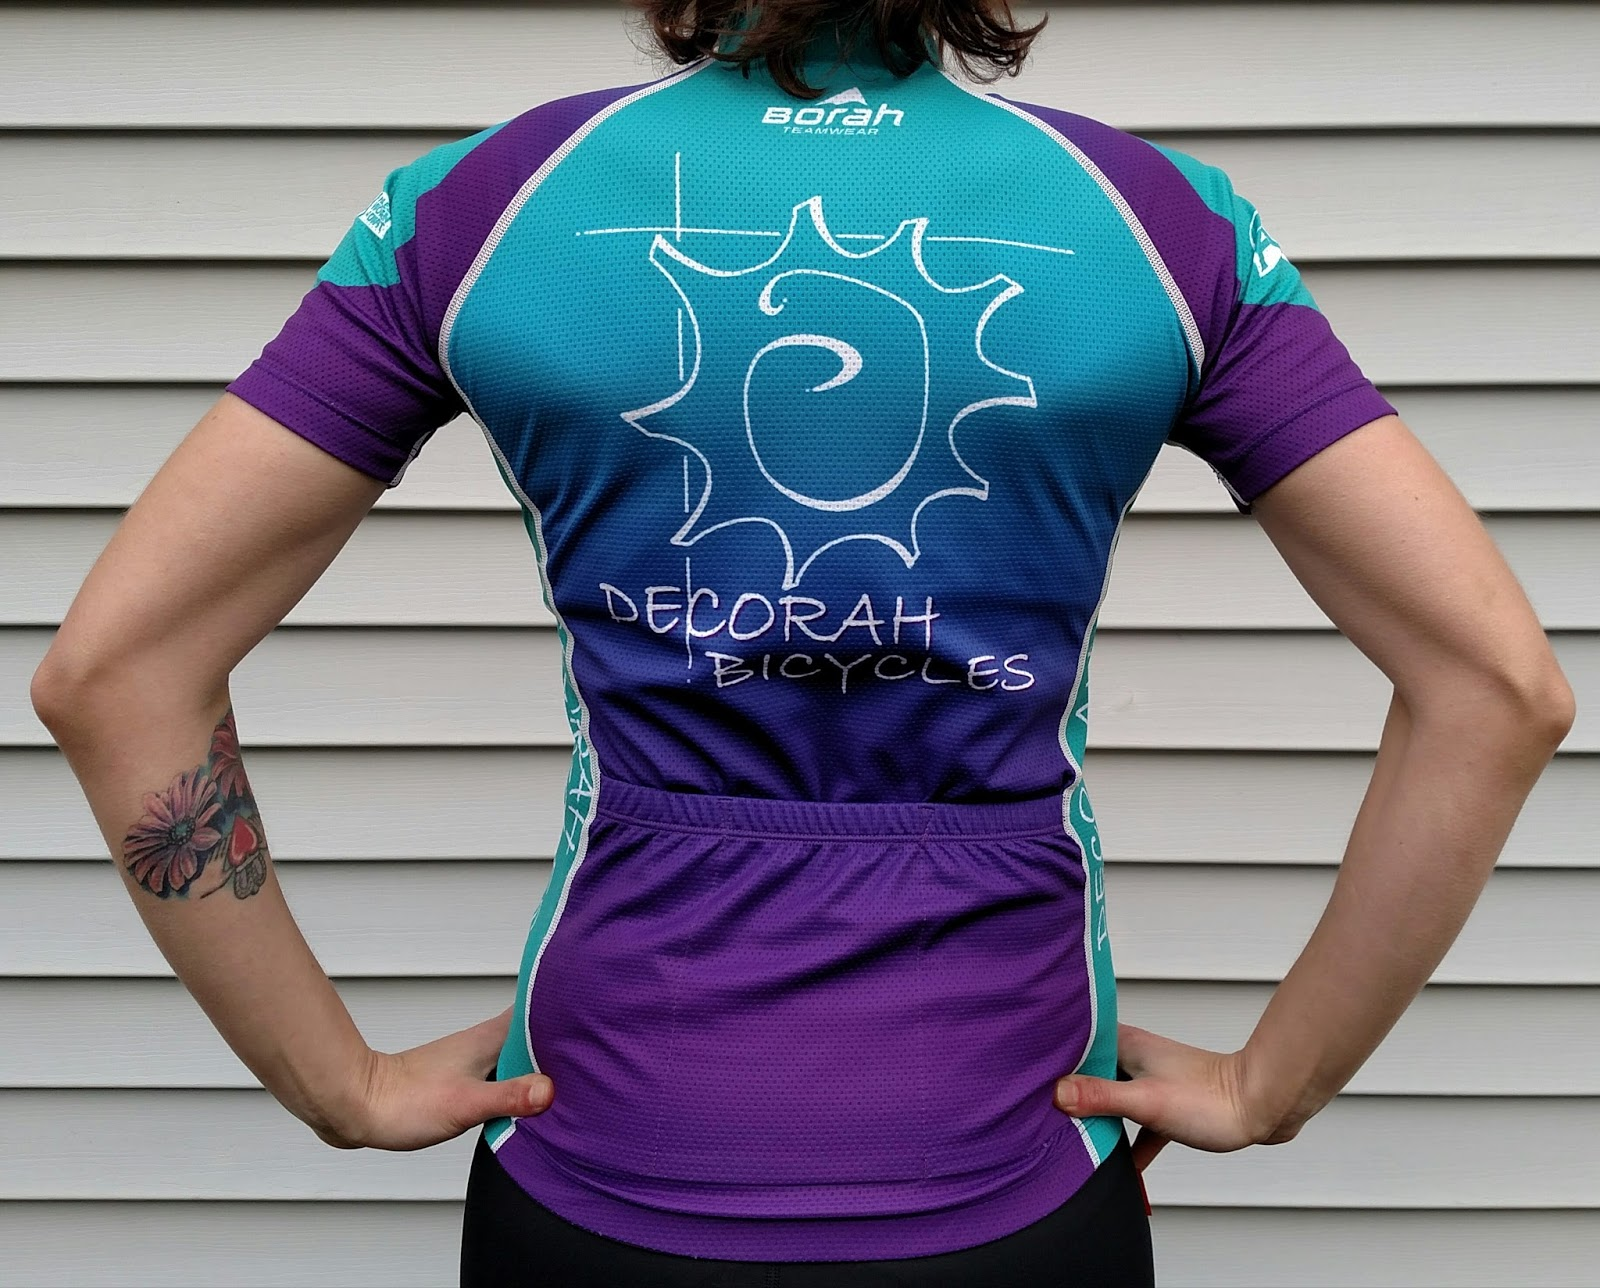 Decorah Bicycles is very excited to be working with Borah on these jerseys  for several factors. One 54d642714